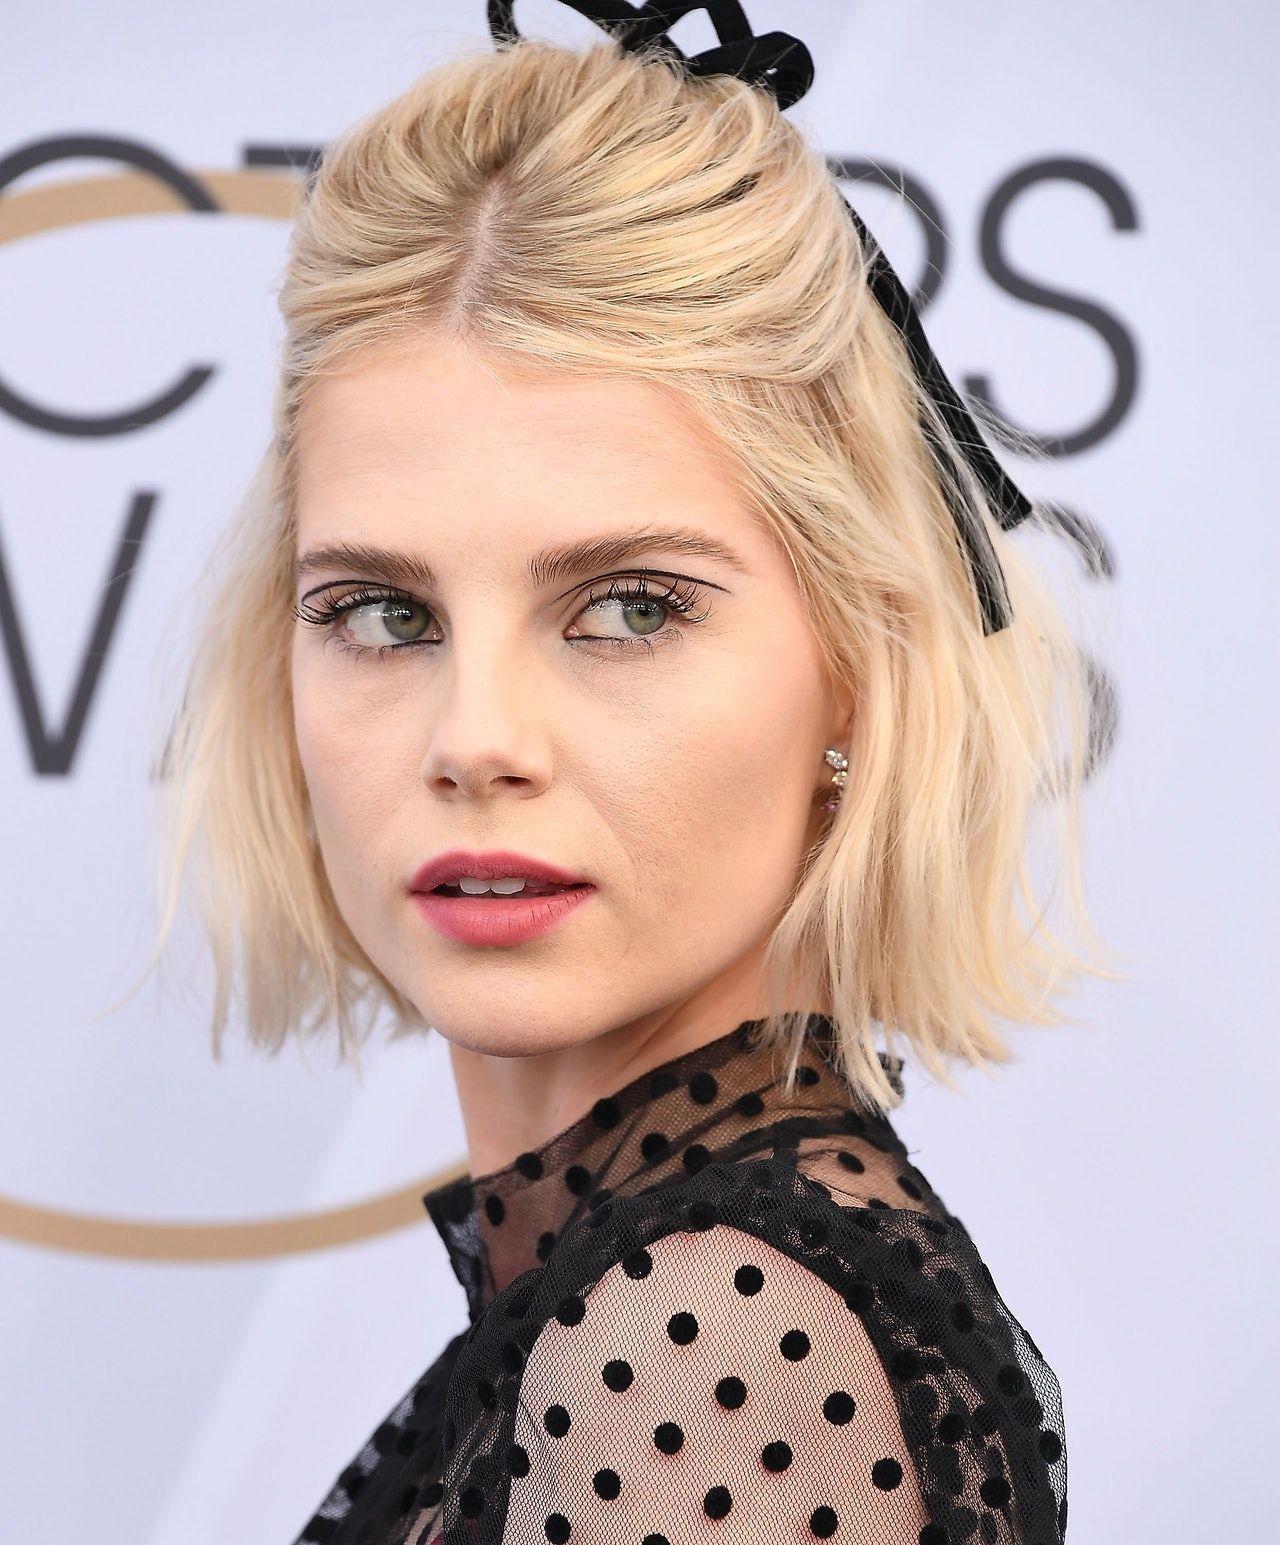 The Unexpected Makeup Trend That Women In Their 20s Are Loving According To Pinterest In 2020 Short Hair Styles Easy Short Hair Styles Beauty